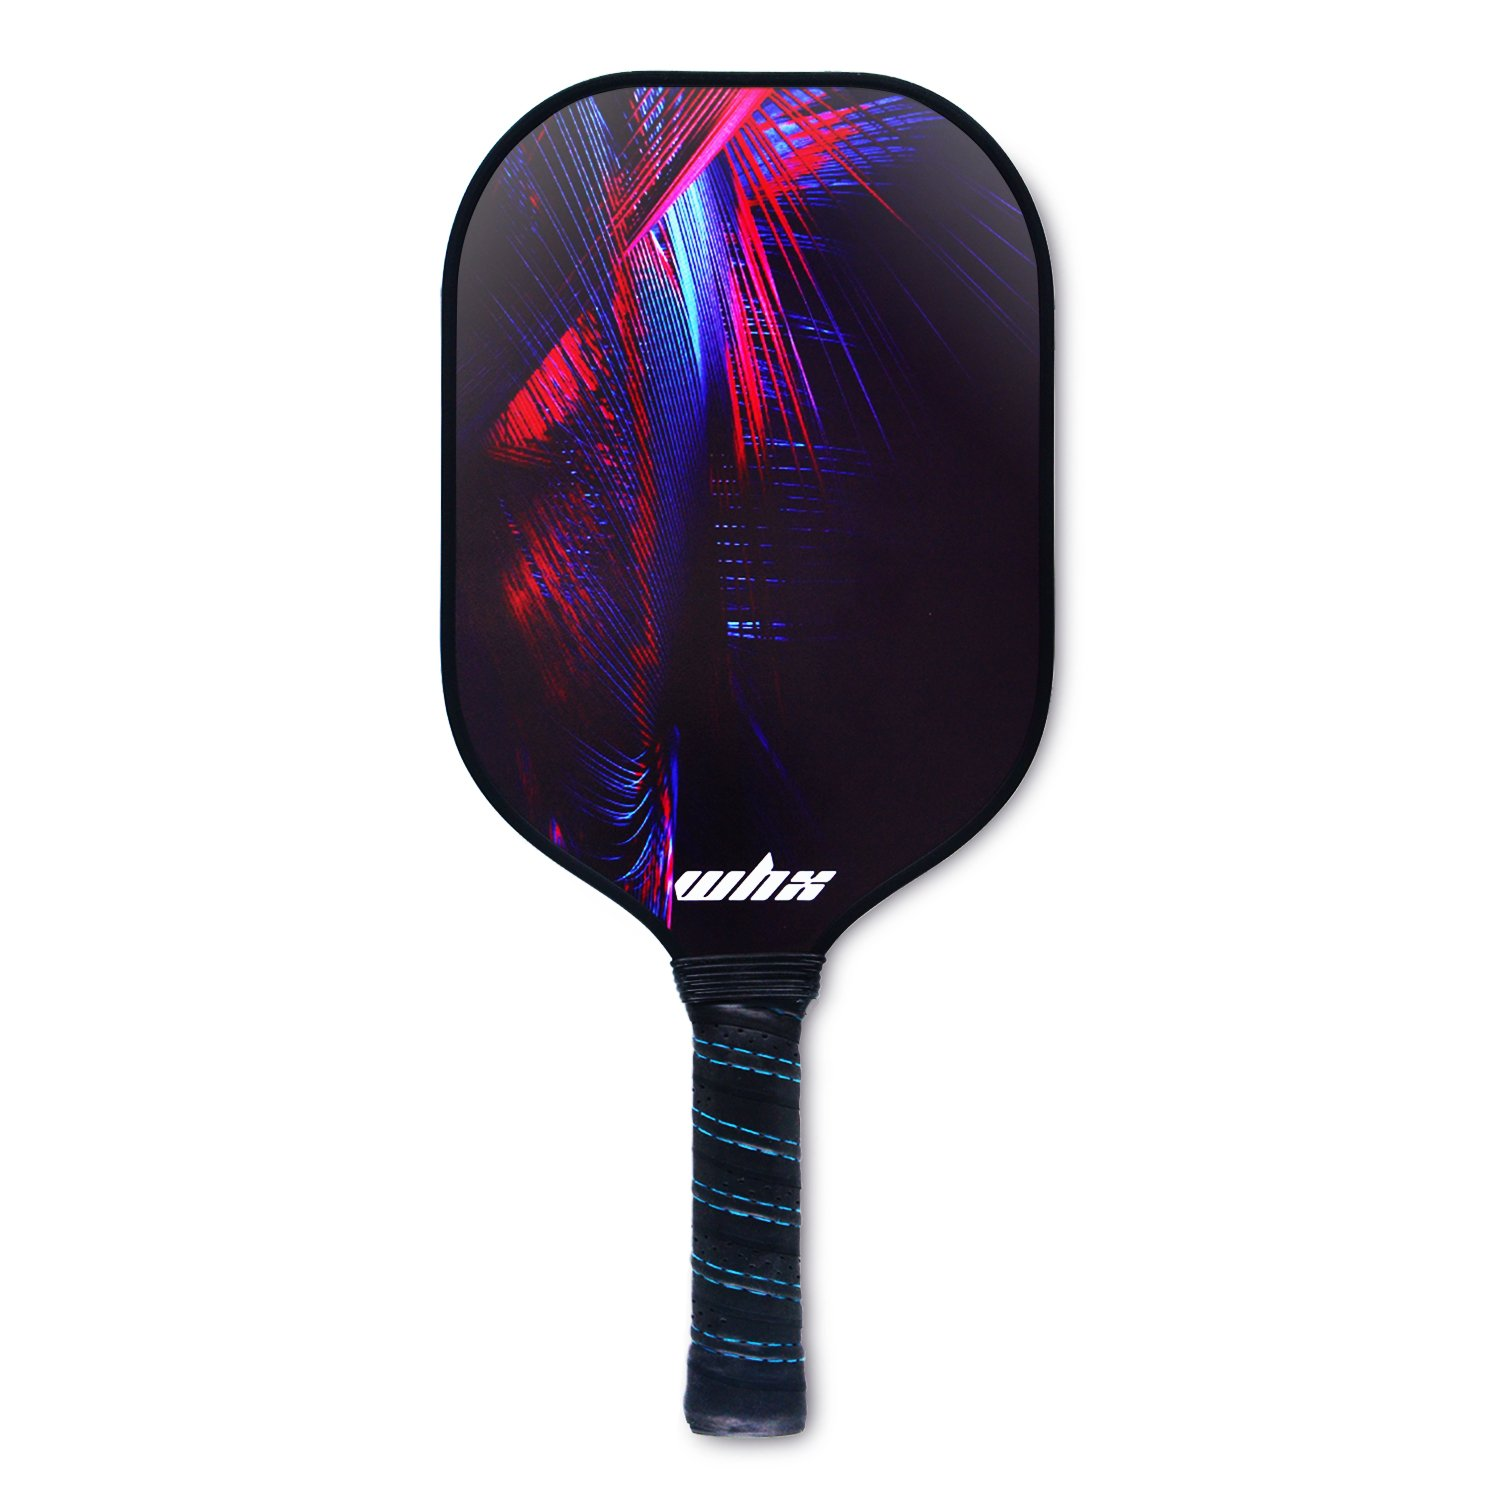 Amazon.com : WHX Pickleball Paddle Graphite Paulownia Wood Composite Core - Comfort Cushion Grips Carbon Fiber Pickleball Racket Cover with Carrying Bag ...